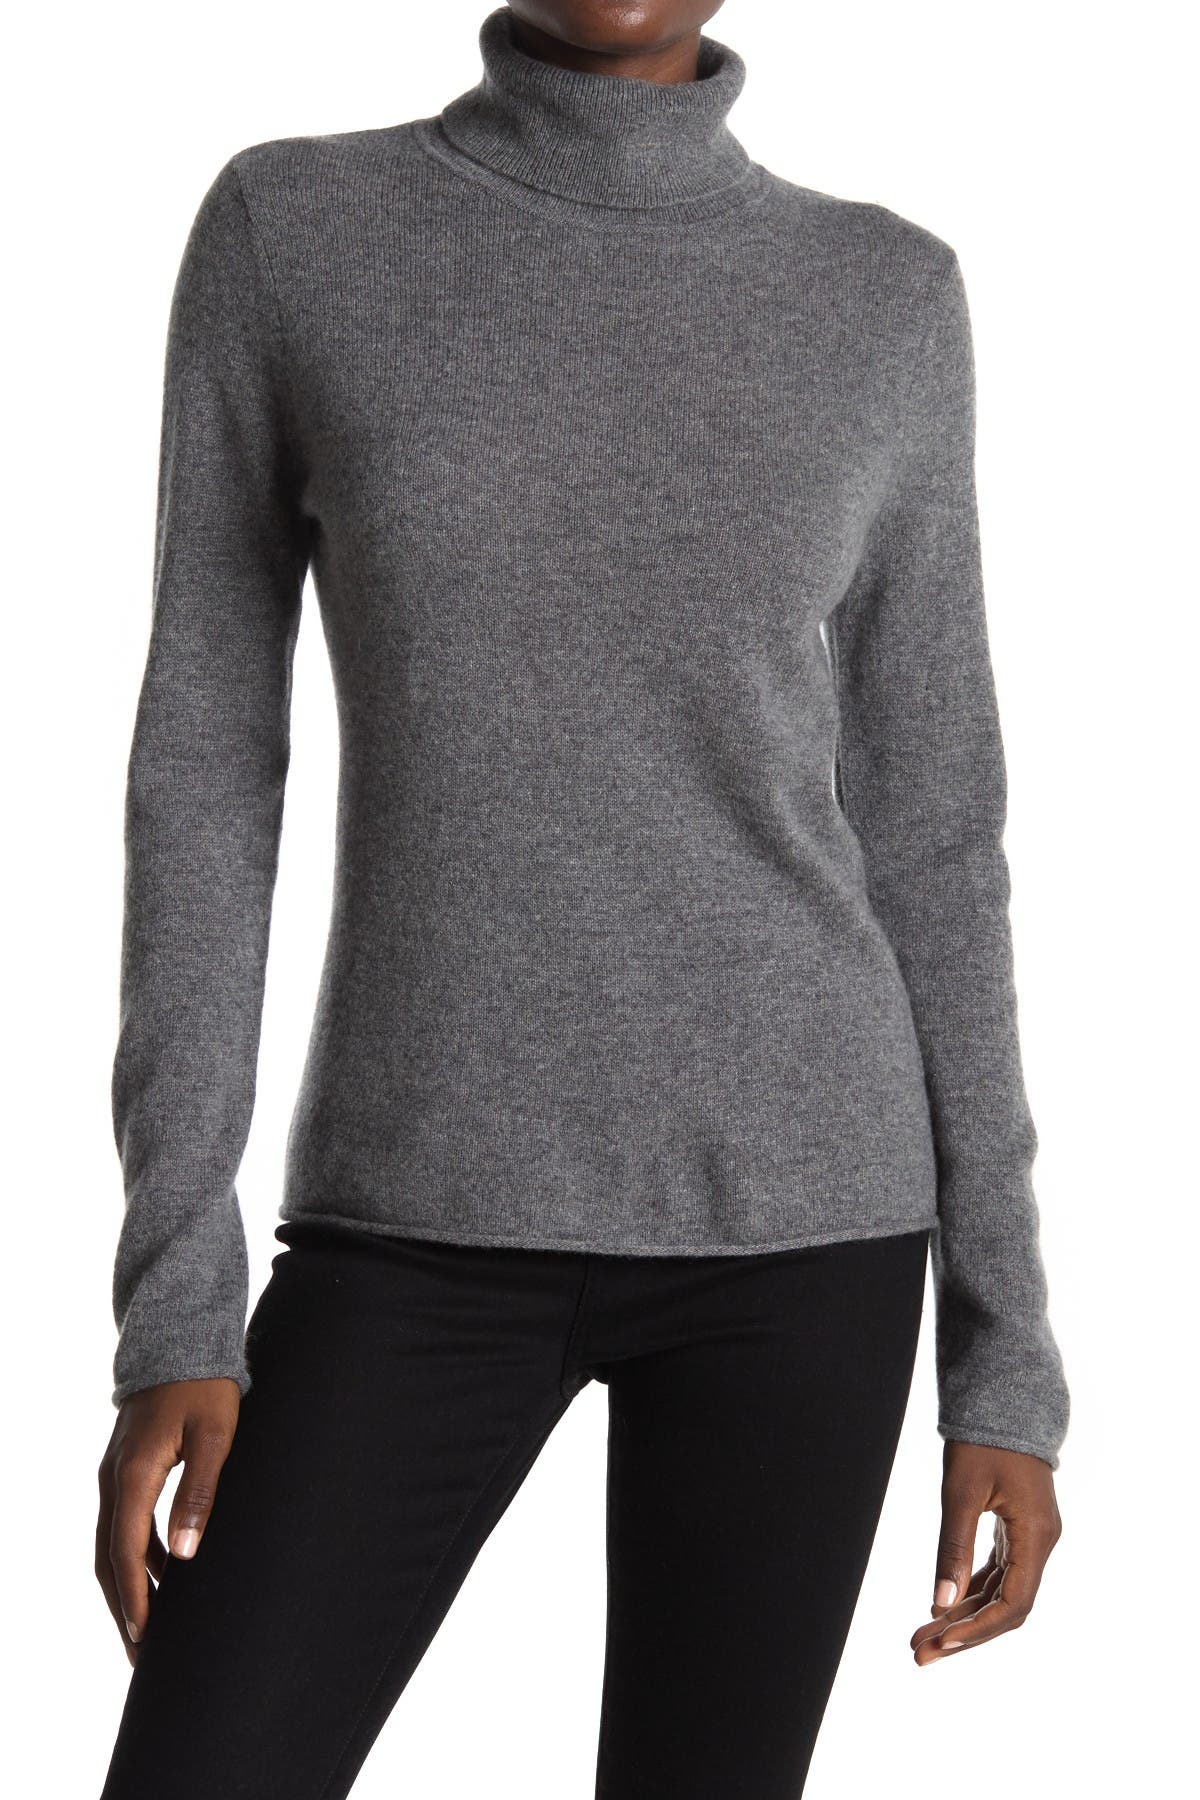 Image of 14th & Union Turtleneck Cashmere Sweater